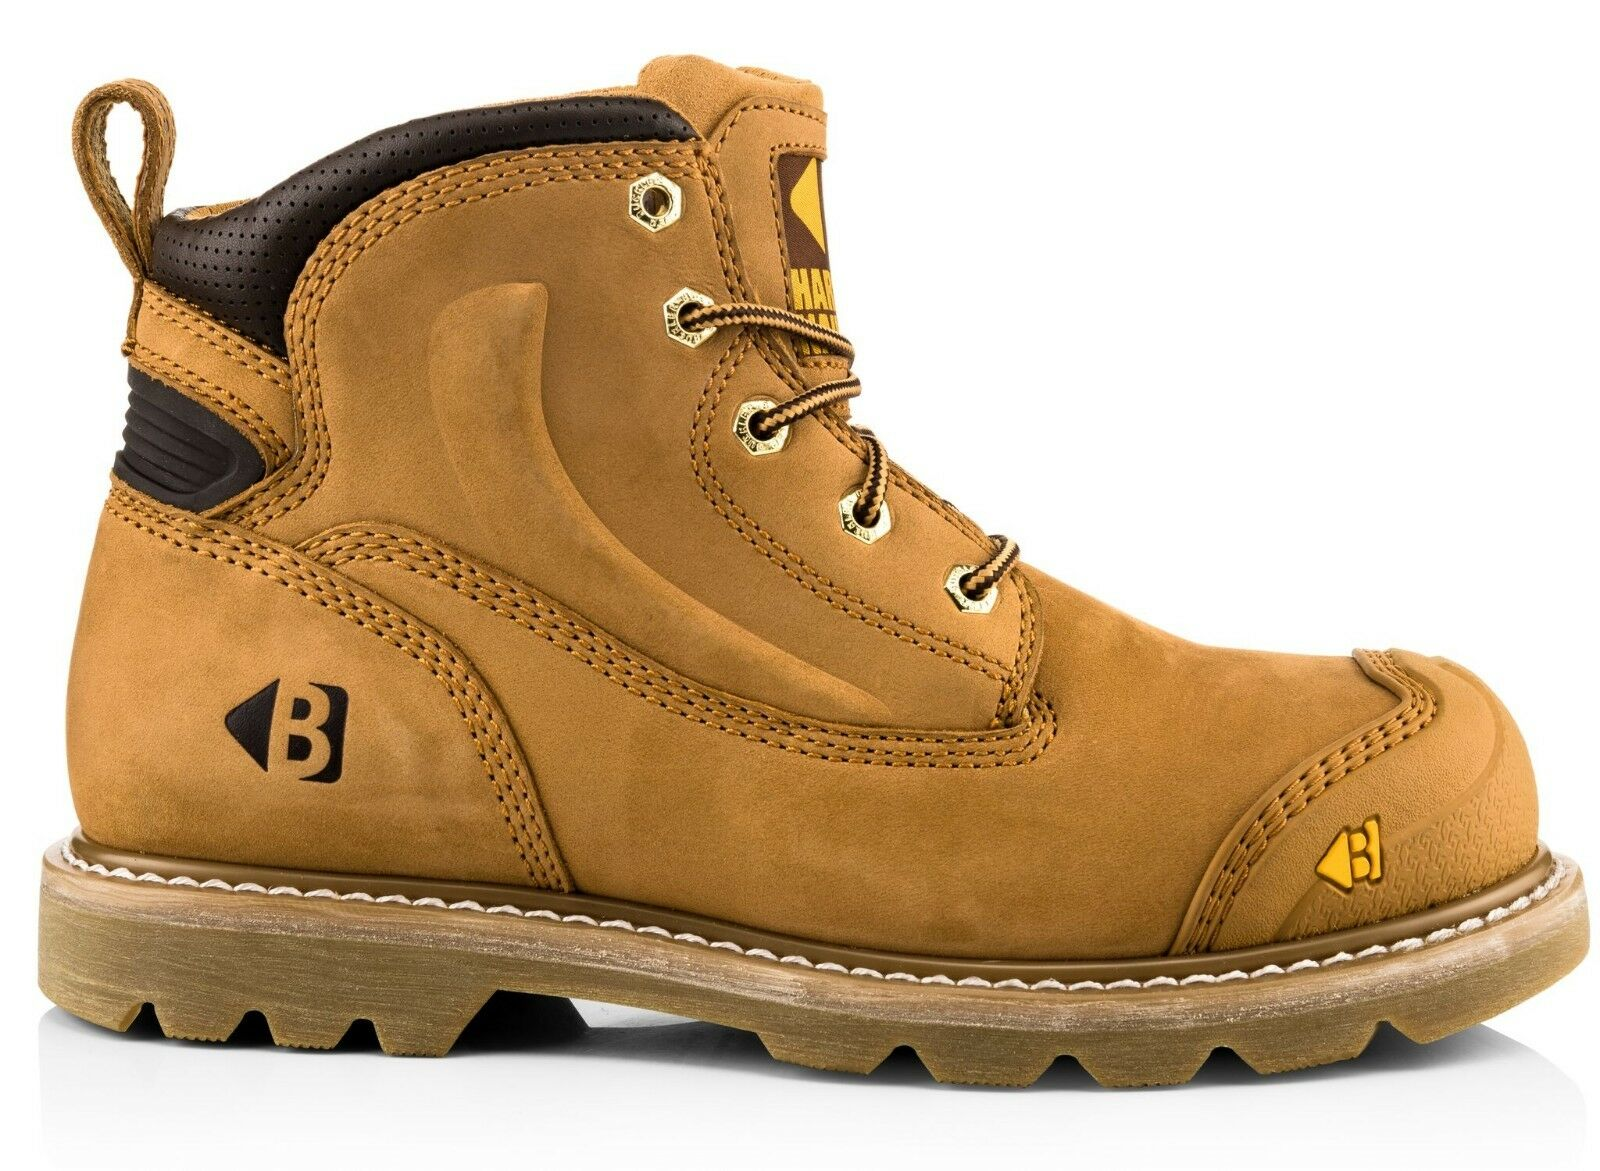 Buckbootz B650SM Wide Fit Safety Work Boots Tan Honey Leather (Sizes 7-13)